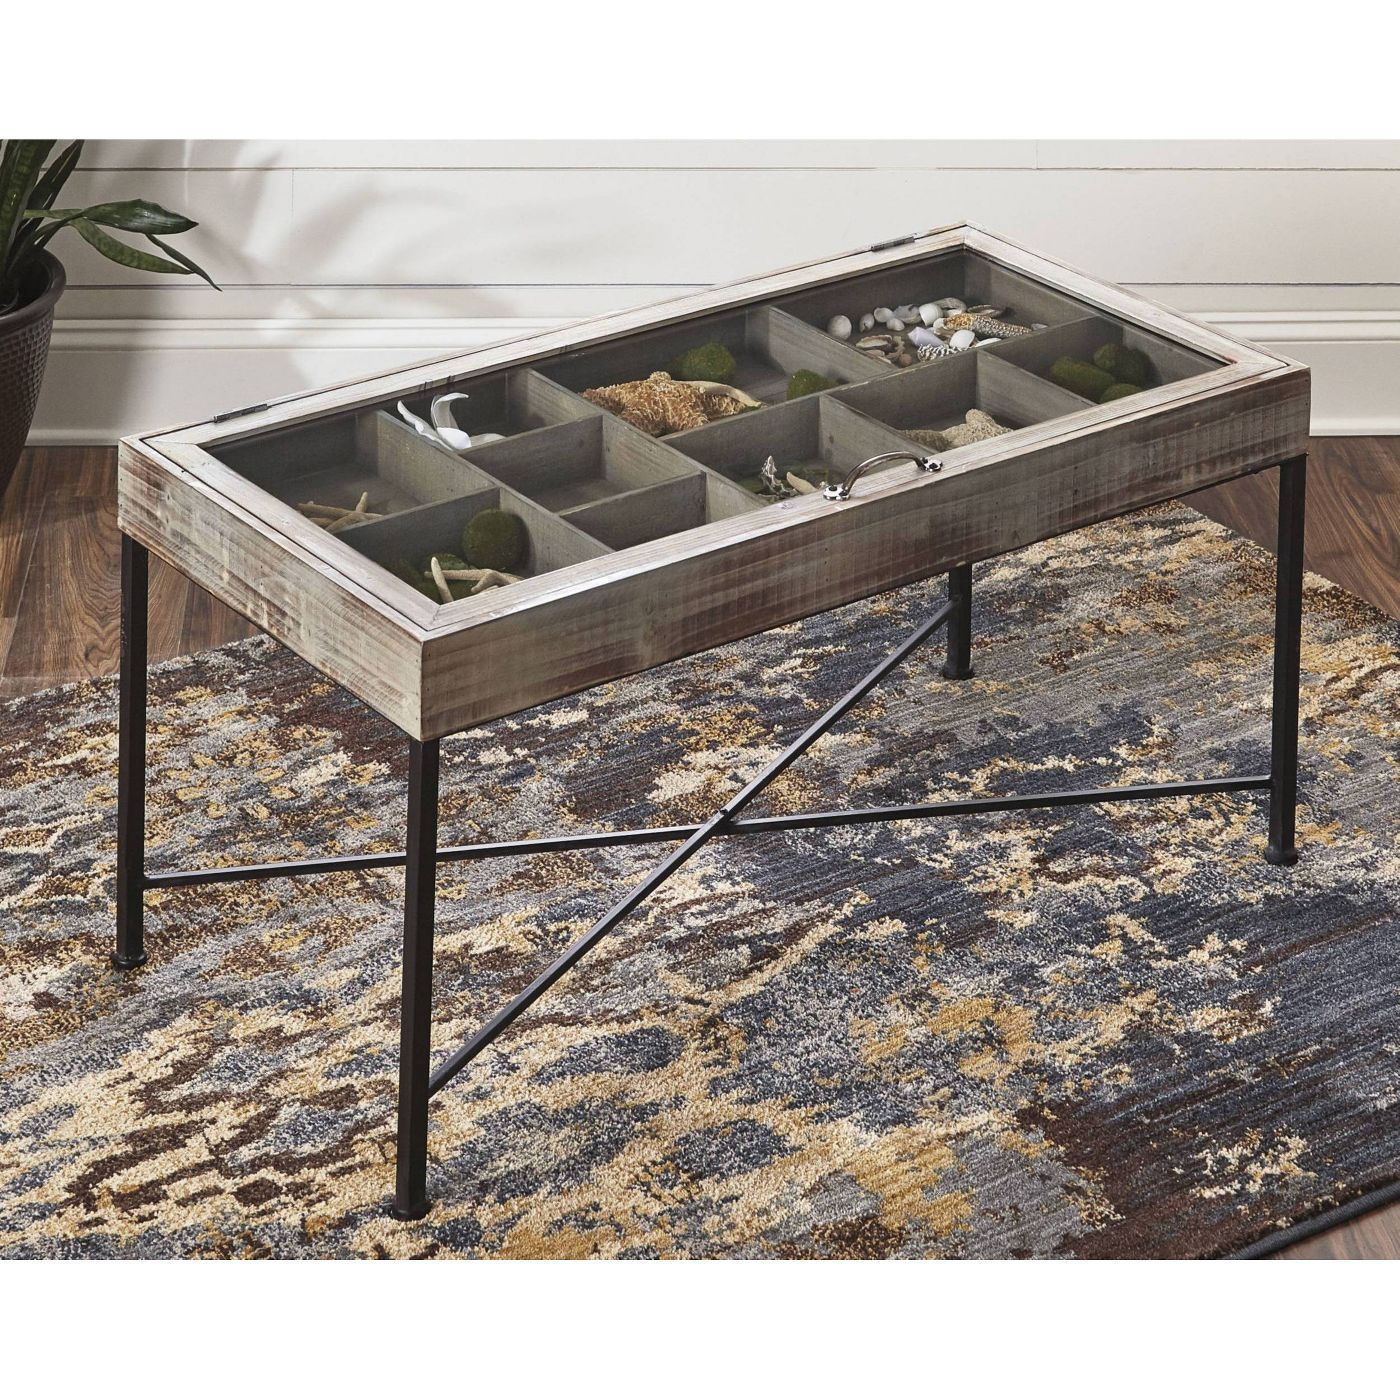 Shellmond Coffee Table With Display Case Antique Gray Black Signature Design By Ashley In 2021 Coffee Table Shadow Box Coffee Table Wood Cocktail Table [ 1400 x 1400 Pixel ]